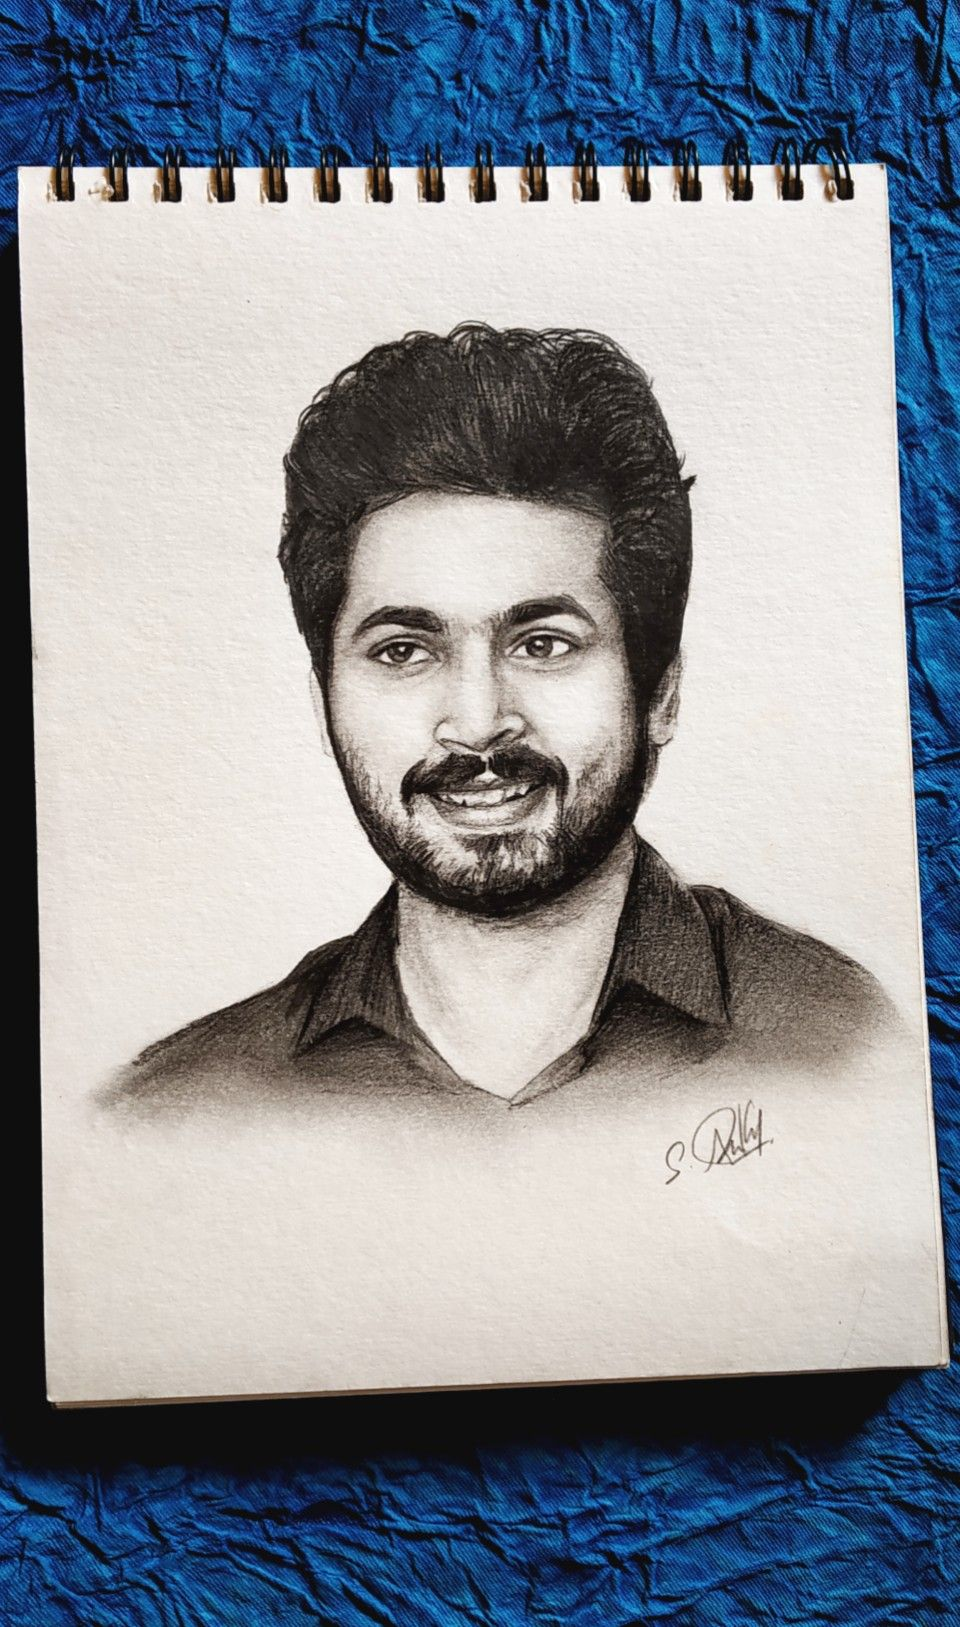 Harish kalyan pencil sketch done by arun shivam